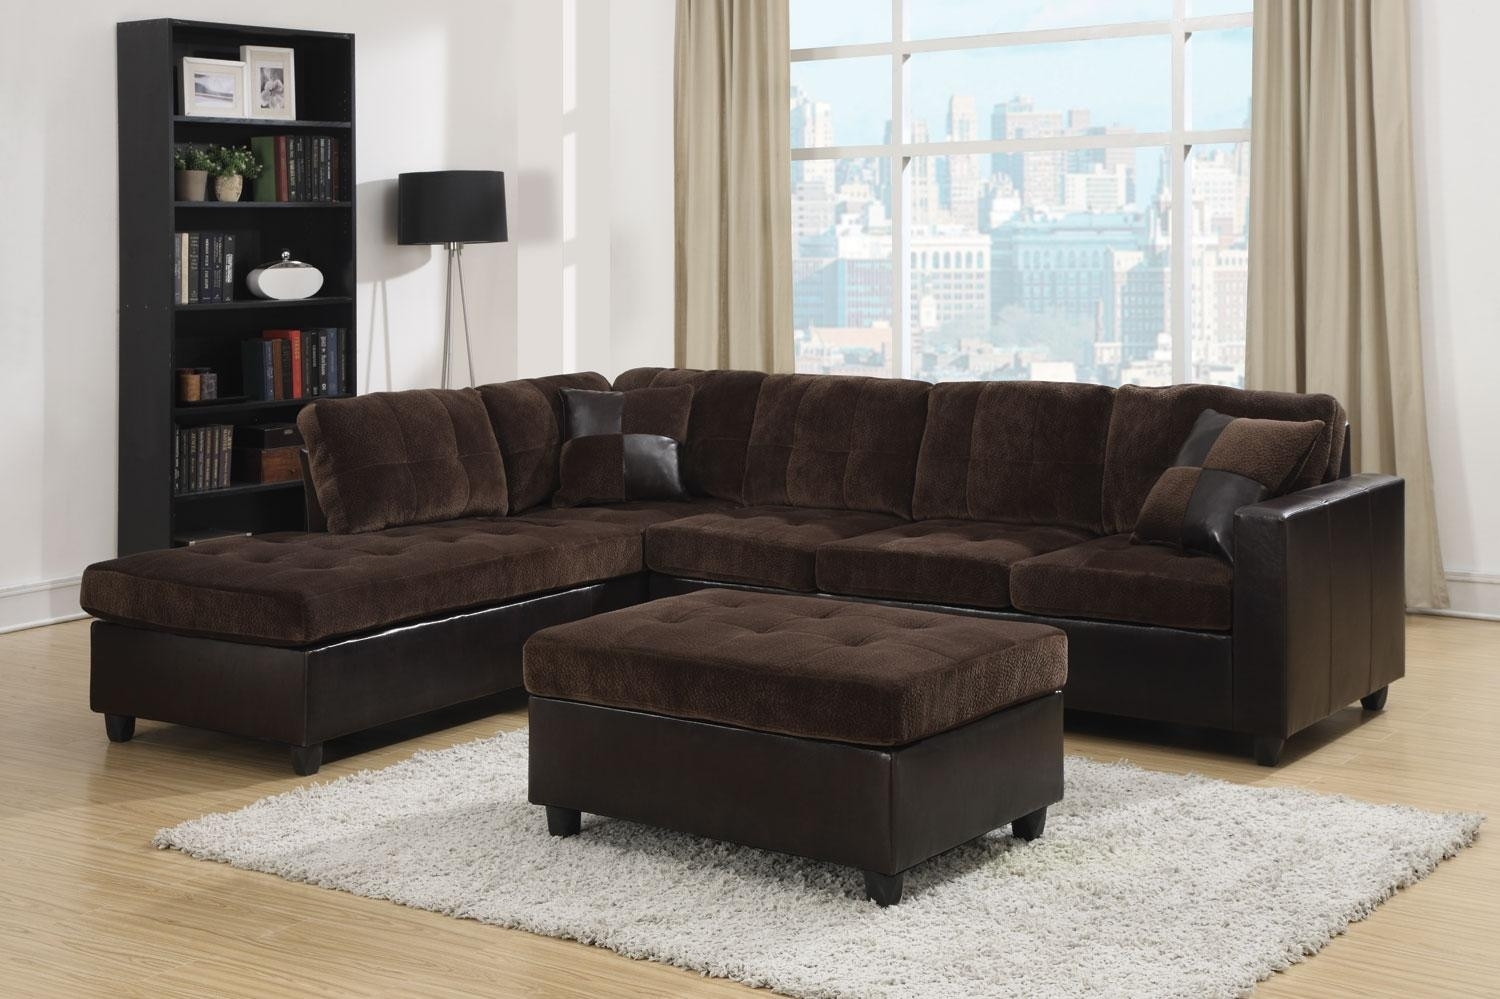 Ivan Smith Sectional Sofas | Digitalstudiosweb In Ivan Smith Sectional Sofas (Image 6 of 10)